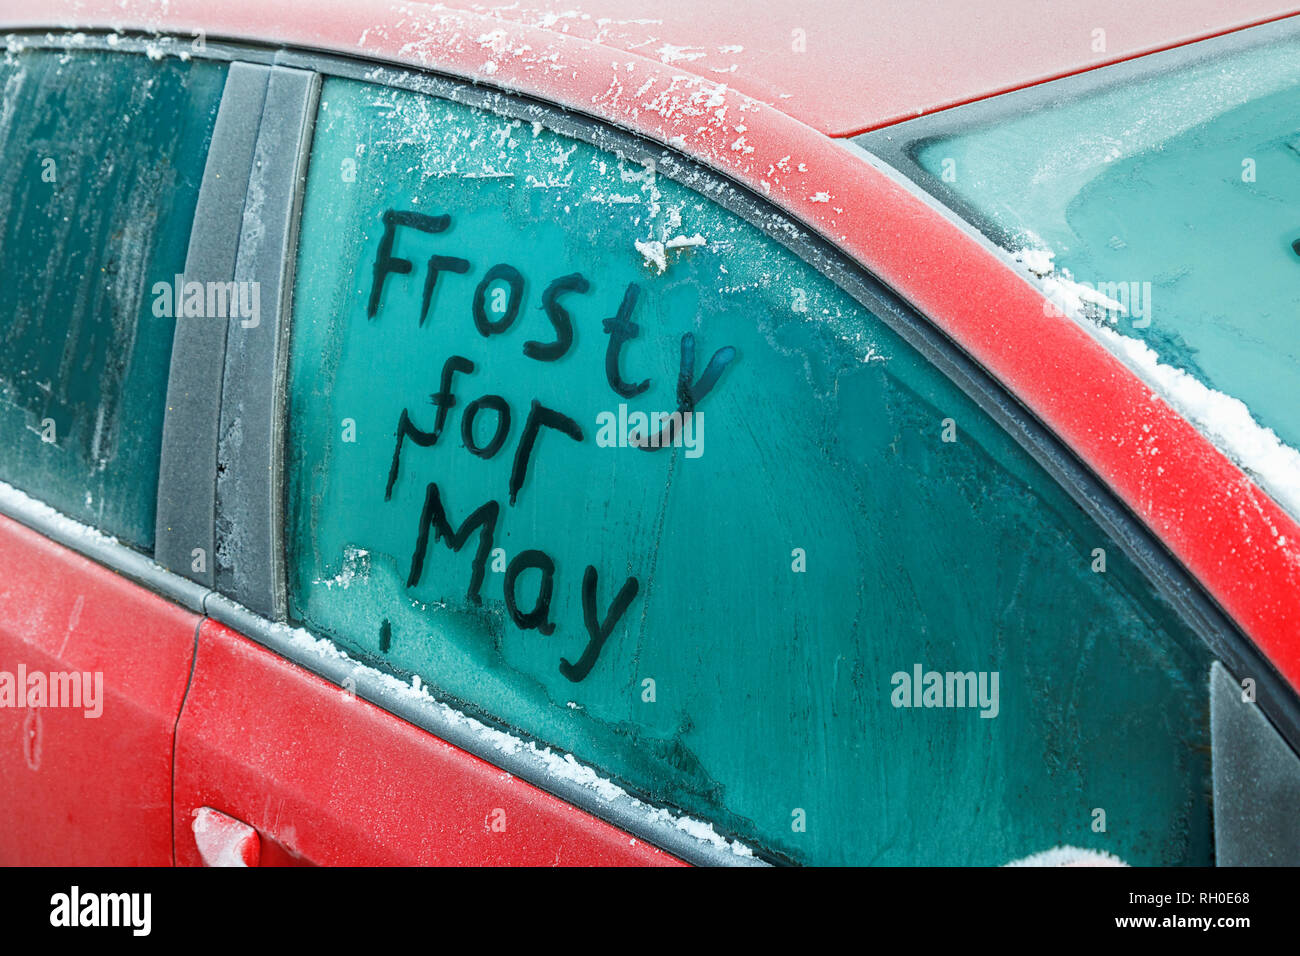 Woking, Surrey, south-east England, UK, 31st January 2019. UK Weather:  'Frosty for May': A message is written on a frozen car window in the morning after the coldest night in the UK so far this winter as Prime Minister Theresa May prepares to renegotiate the UK's Brexit agreement with EU negotiators.  Credit: Graham Prentice/Alamy Live News. - Stock Image